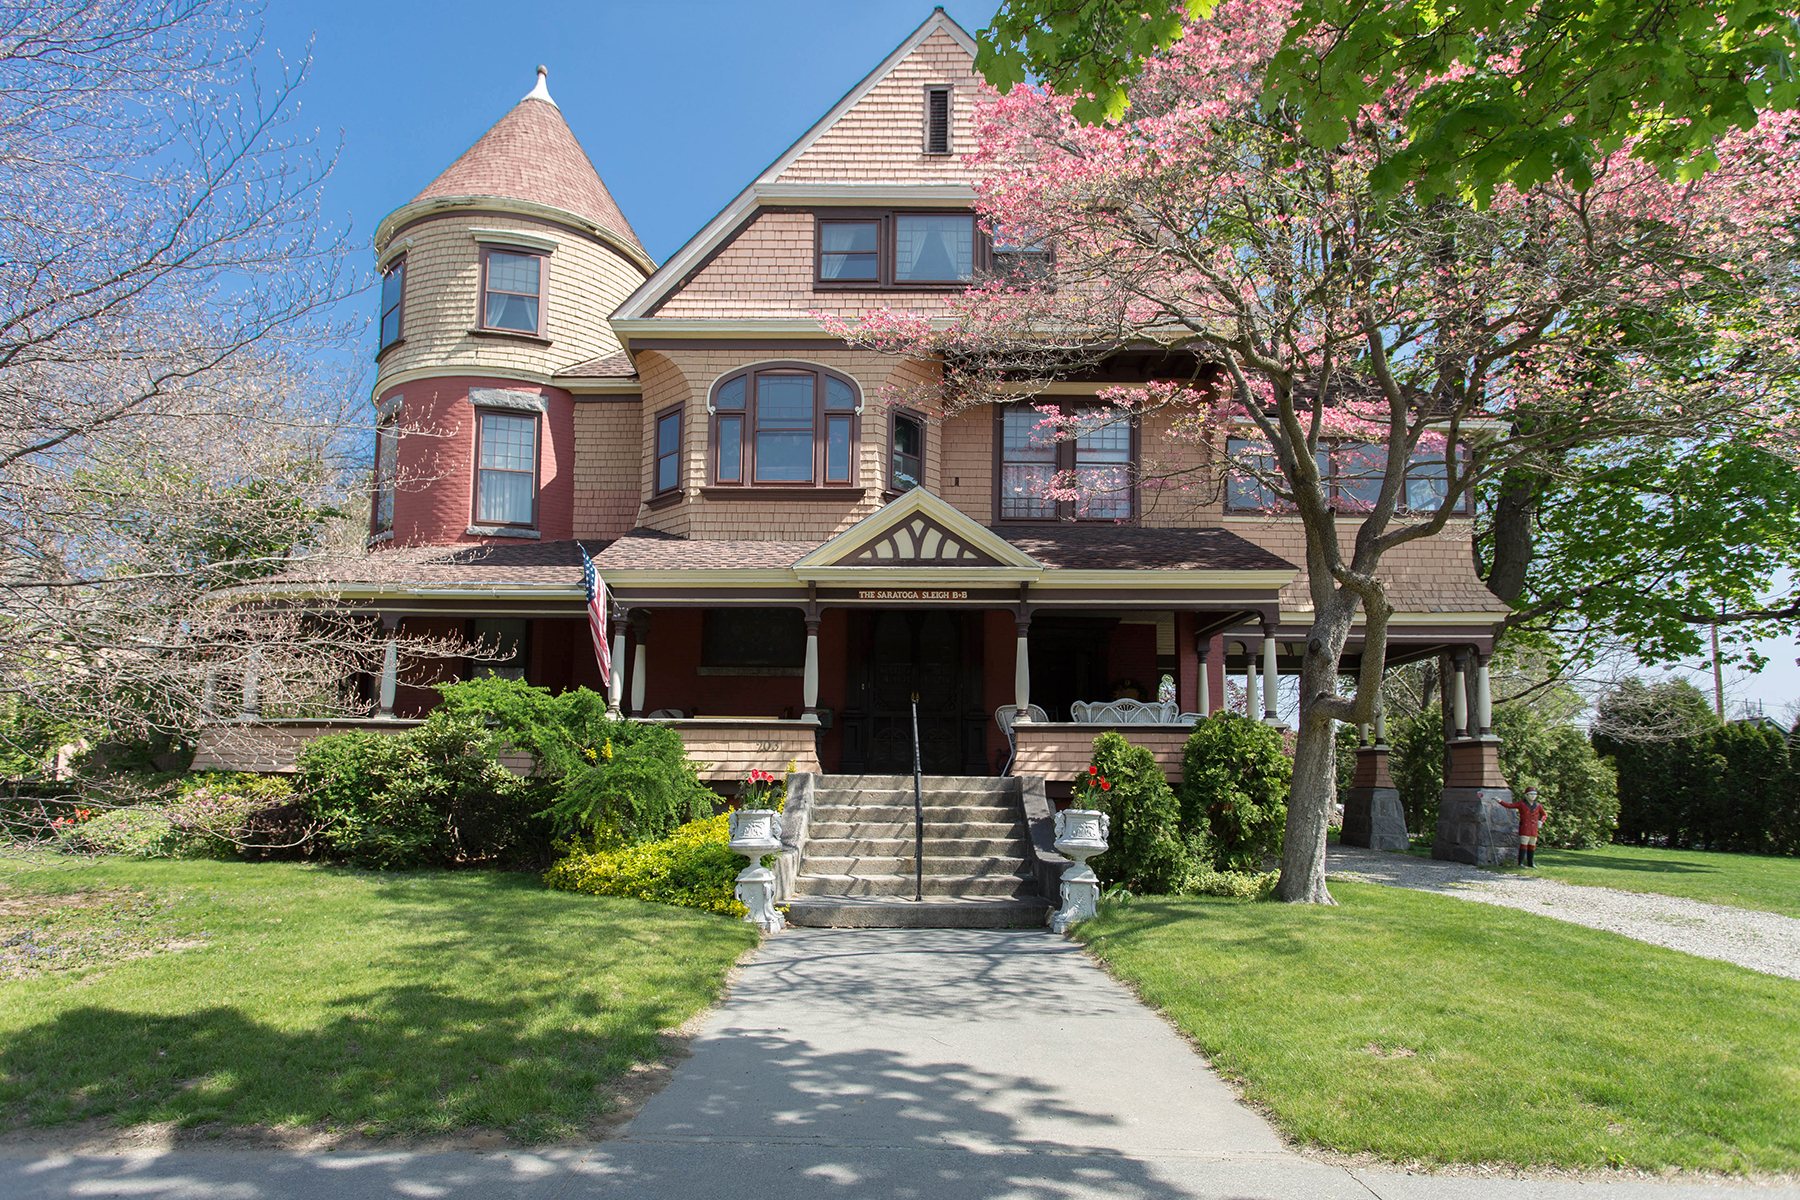 Single Family Home for Sale at Exquisite Saratoga Trackside Victorian 203 Union Av Saratoga Springs, New York 12866 United States